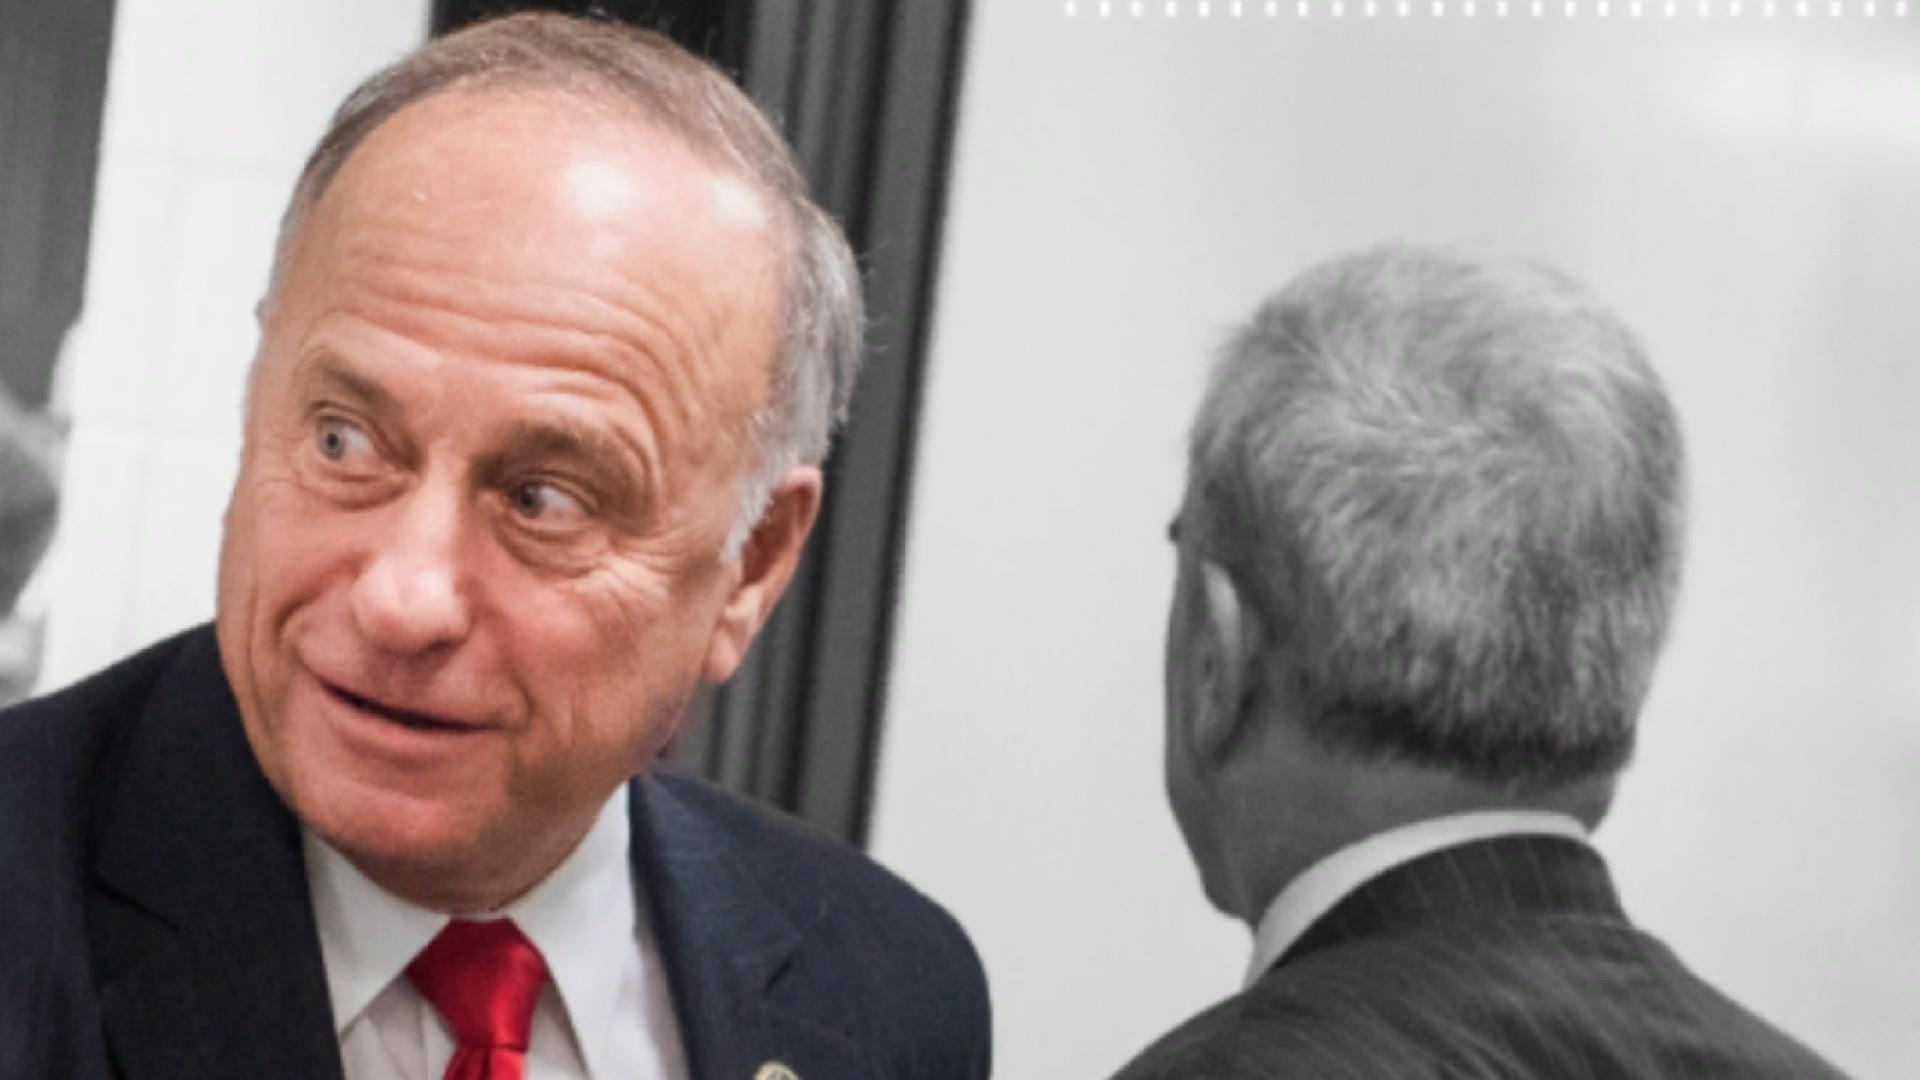 Steve King 'at peace' after rebuke of white supremacy remarks